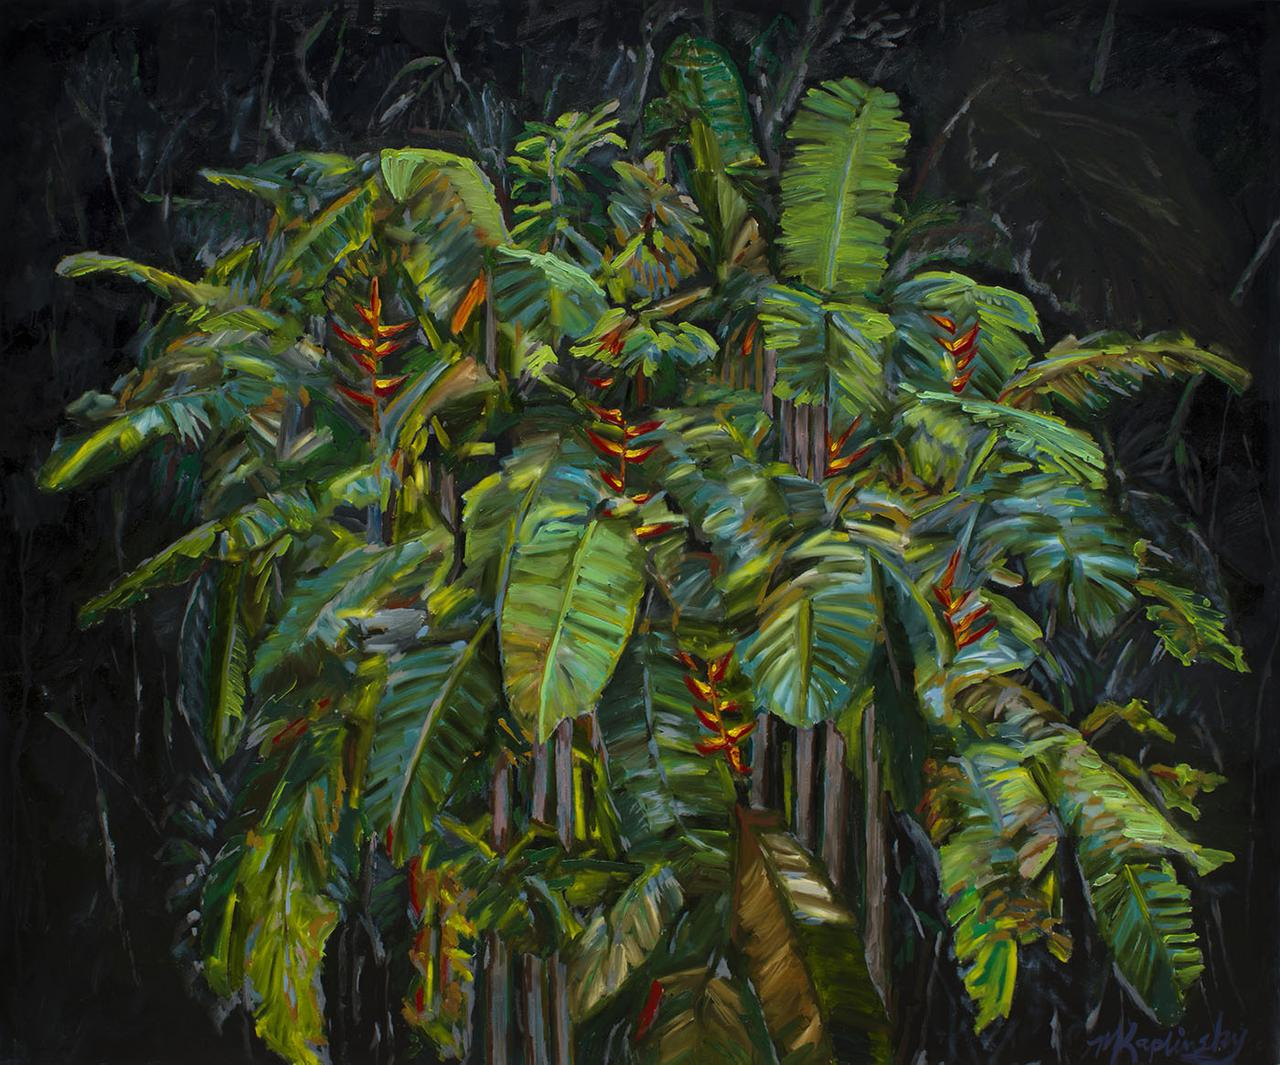 Night Plant oil on canvas by artist Matt Kaplinsky 60x72